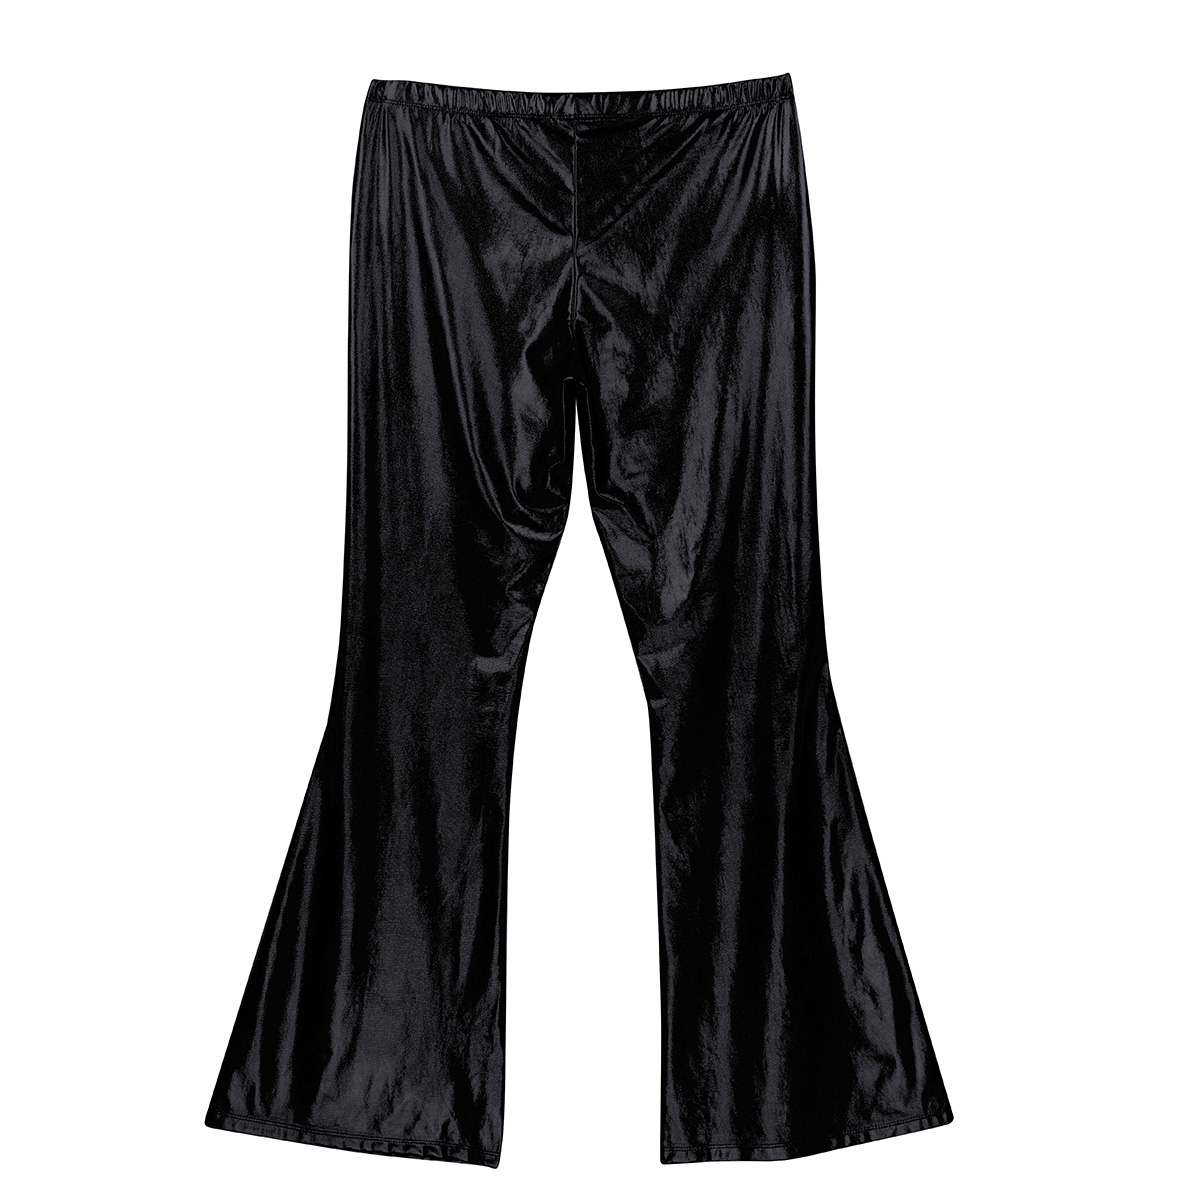 Adult Mens Moto Punk Style Party Pants Shiny Metallic Disco Pants with Bell Bottom Flared Long Pants Dude Costume Trousers 19